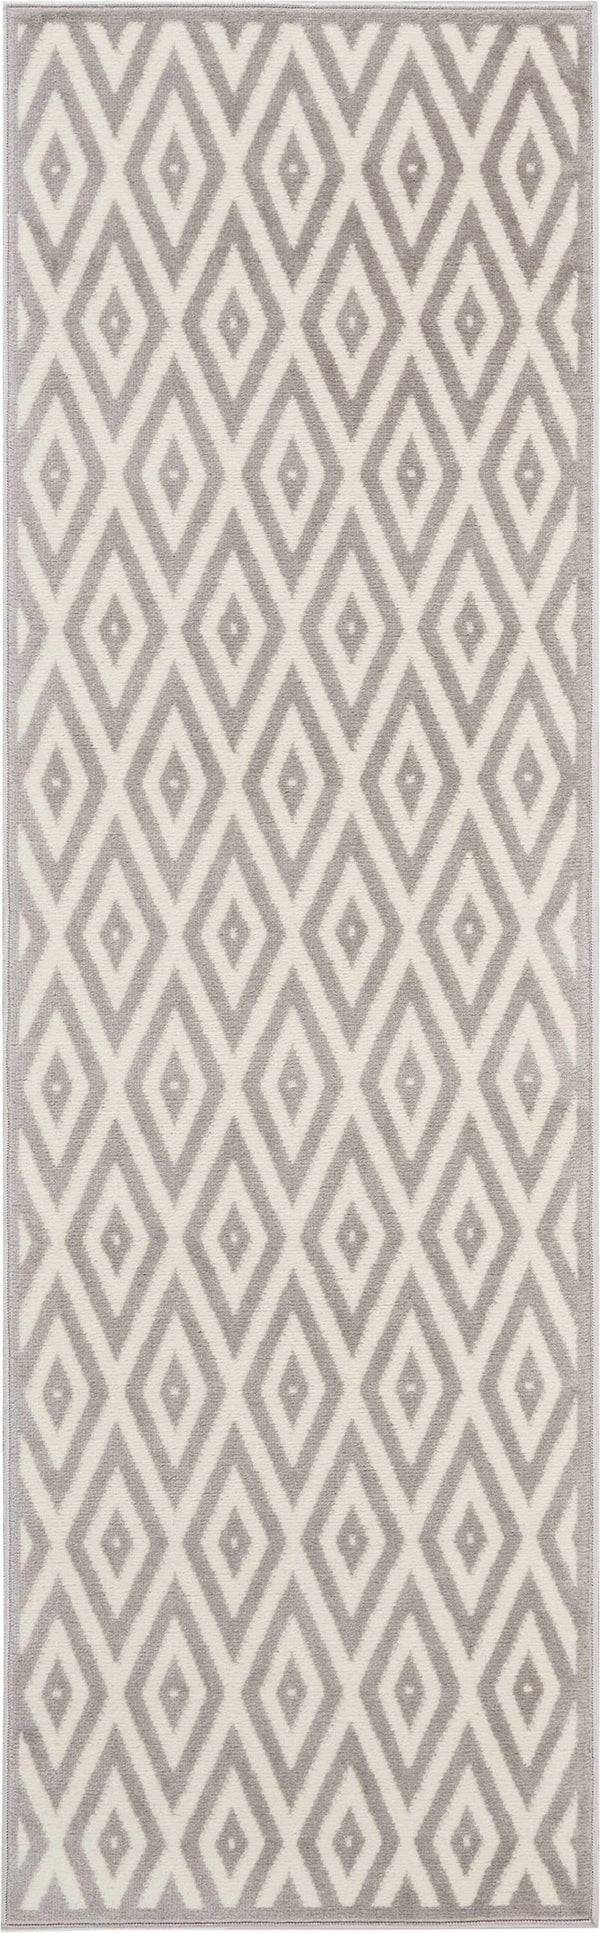 Nourison GRAFIX GRF18 WHITE/GREY Area Rug